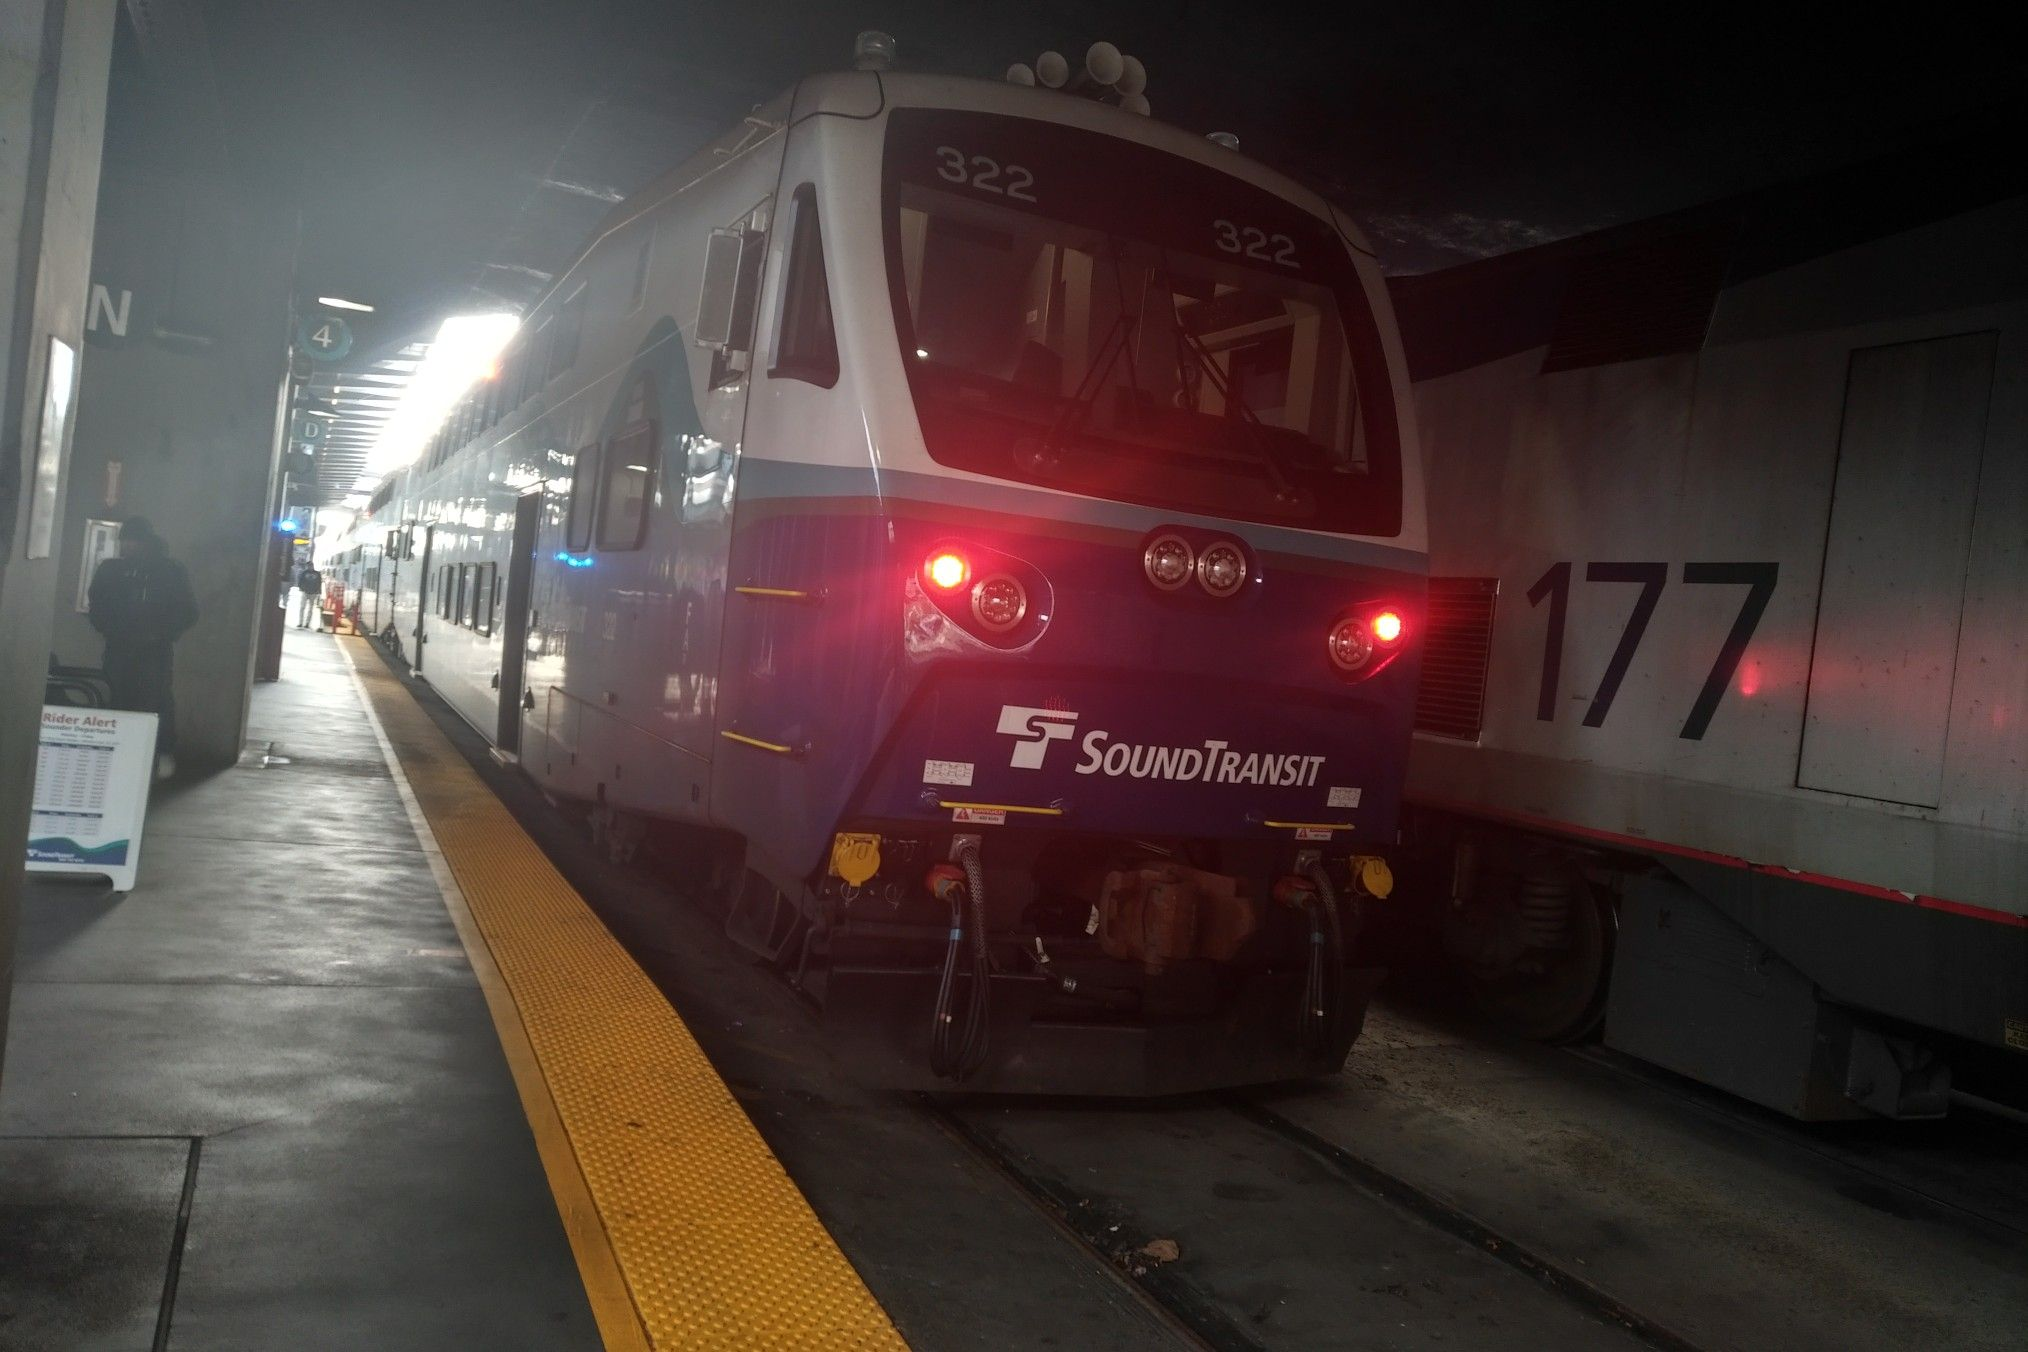 Sounder Train 1618 22 At King Street Station With Cab Car 322 Is Seen Here With Cascades Train 517 22 With Amtk 177 Trailing Seen Side By Train Passenger Cab